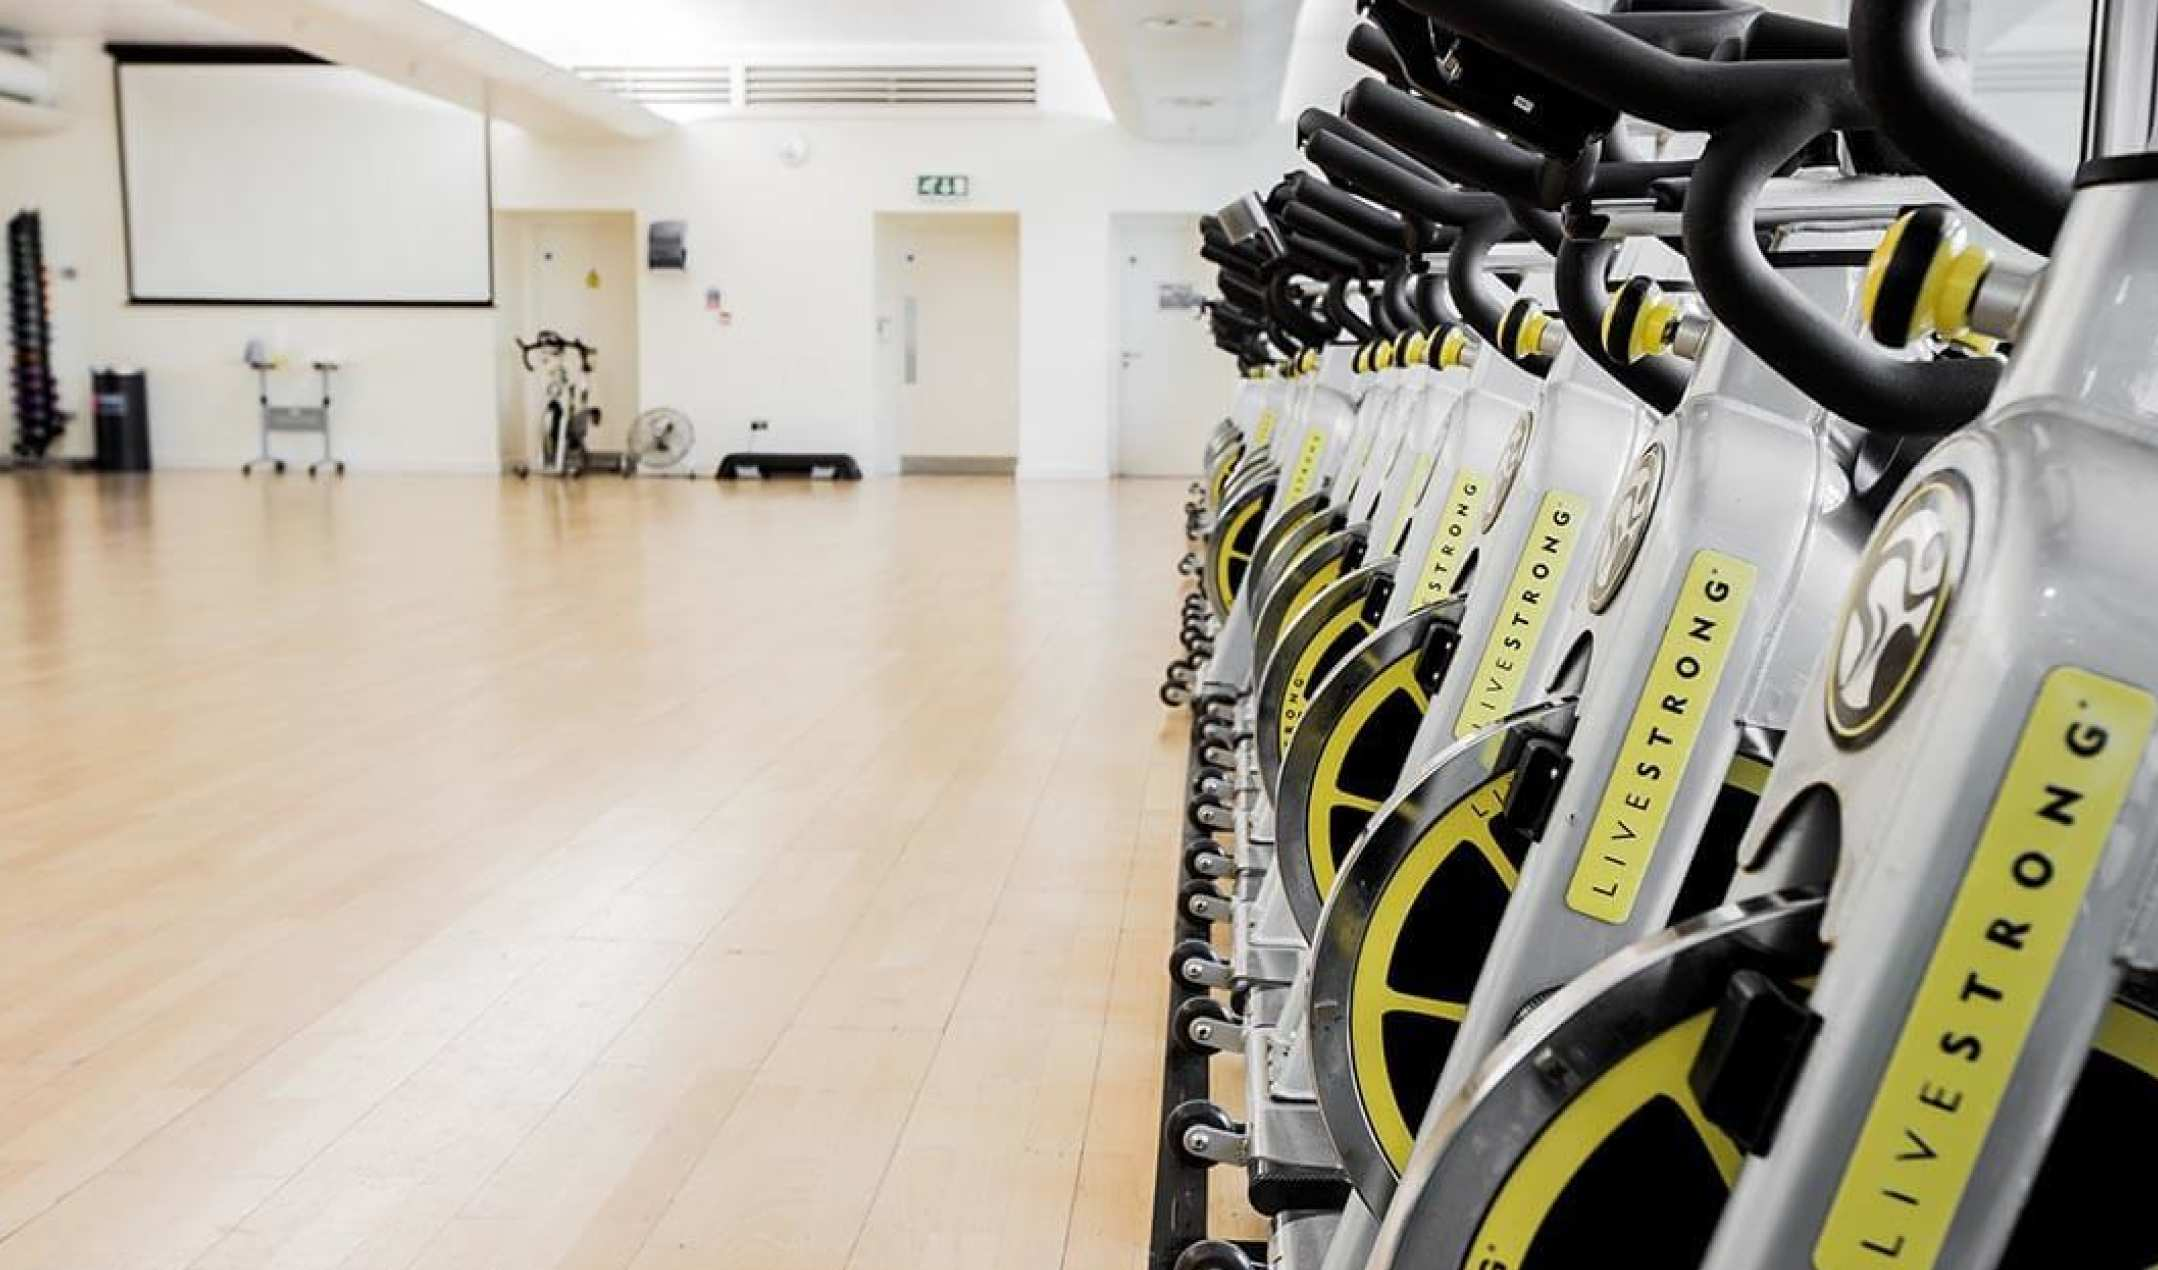 A range of sports facilities for guests including studio classes